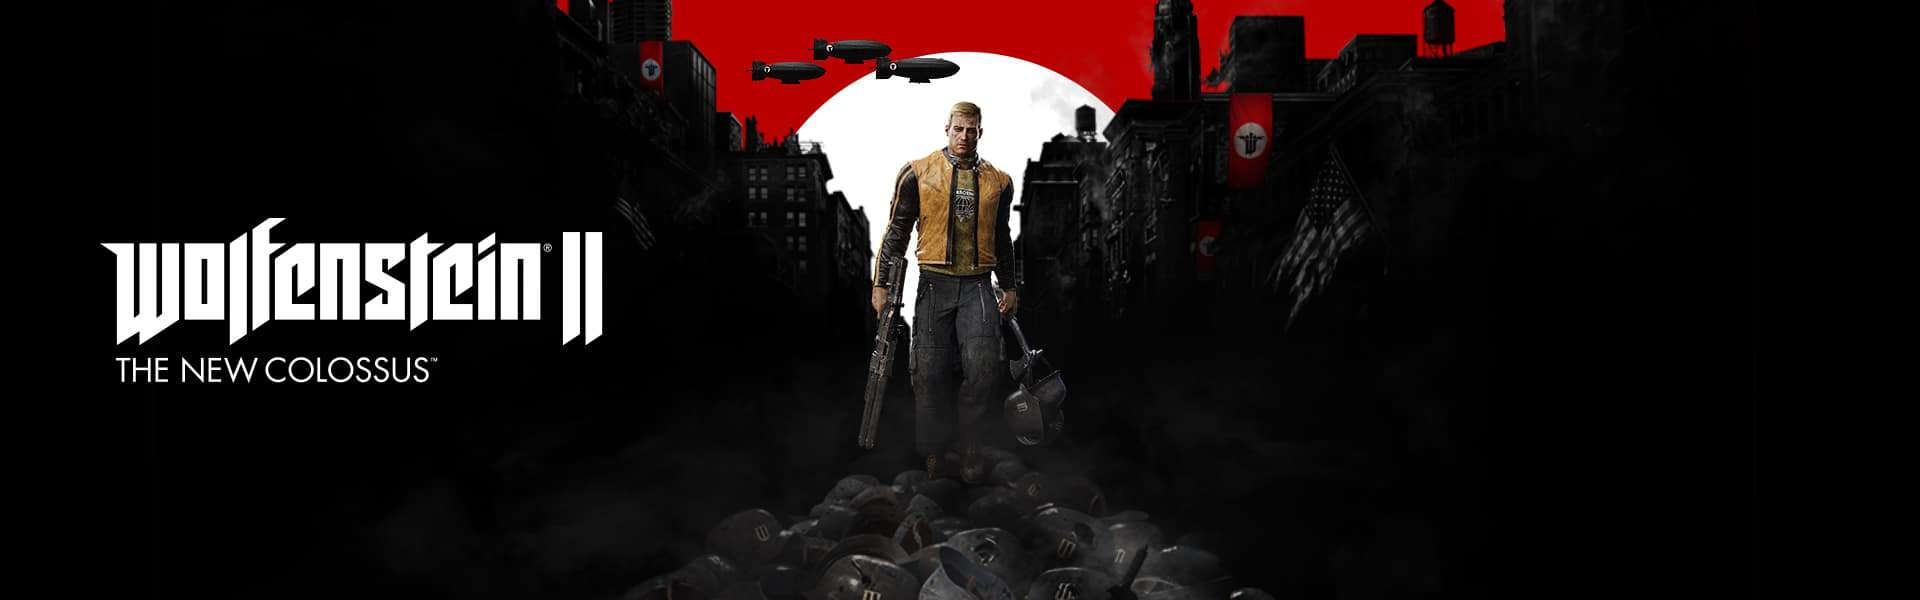 Best Settings For Wolfenstein 2: The New Colossus